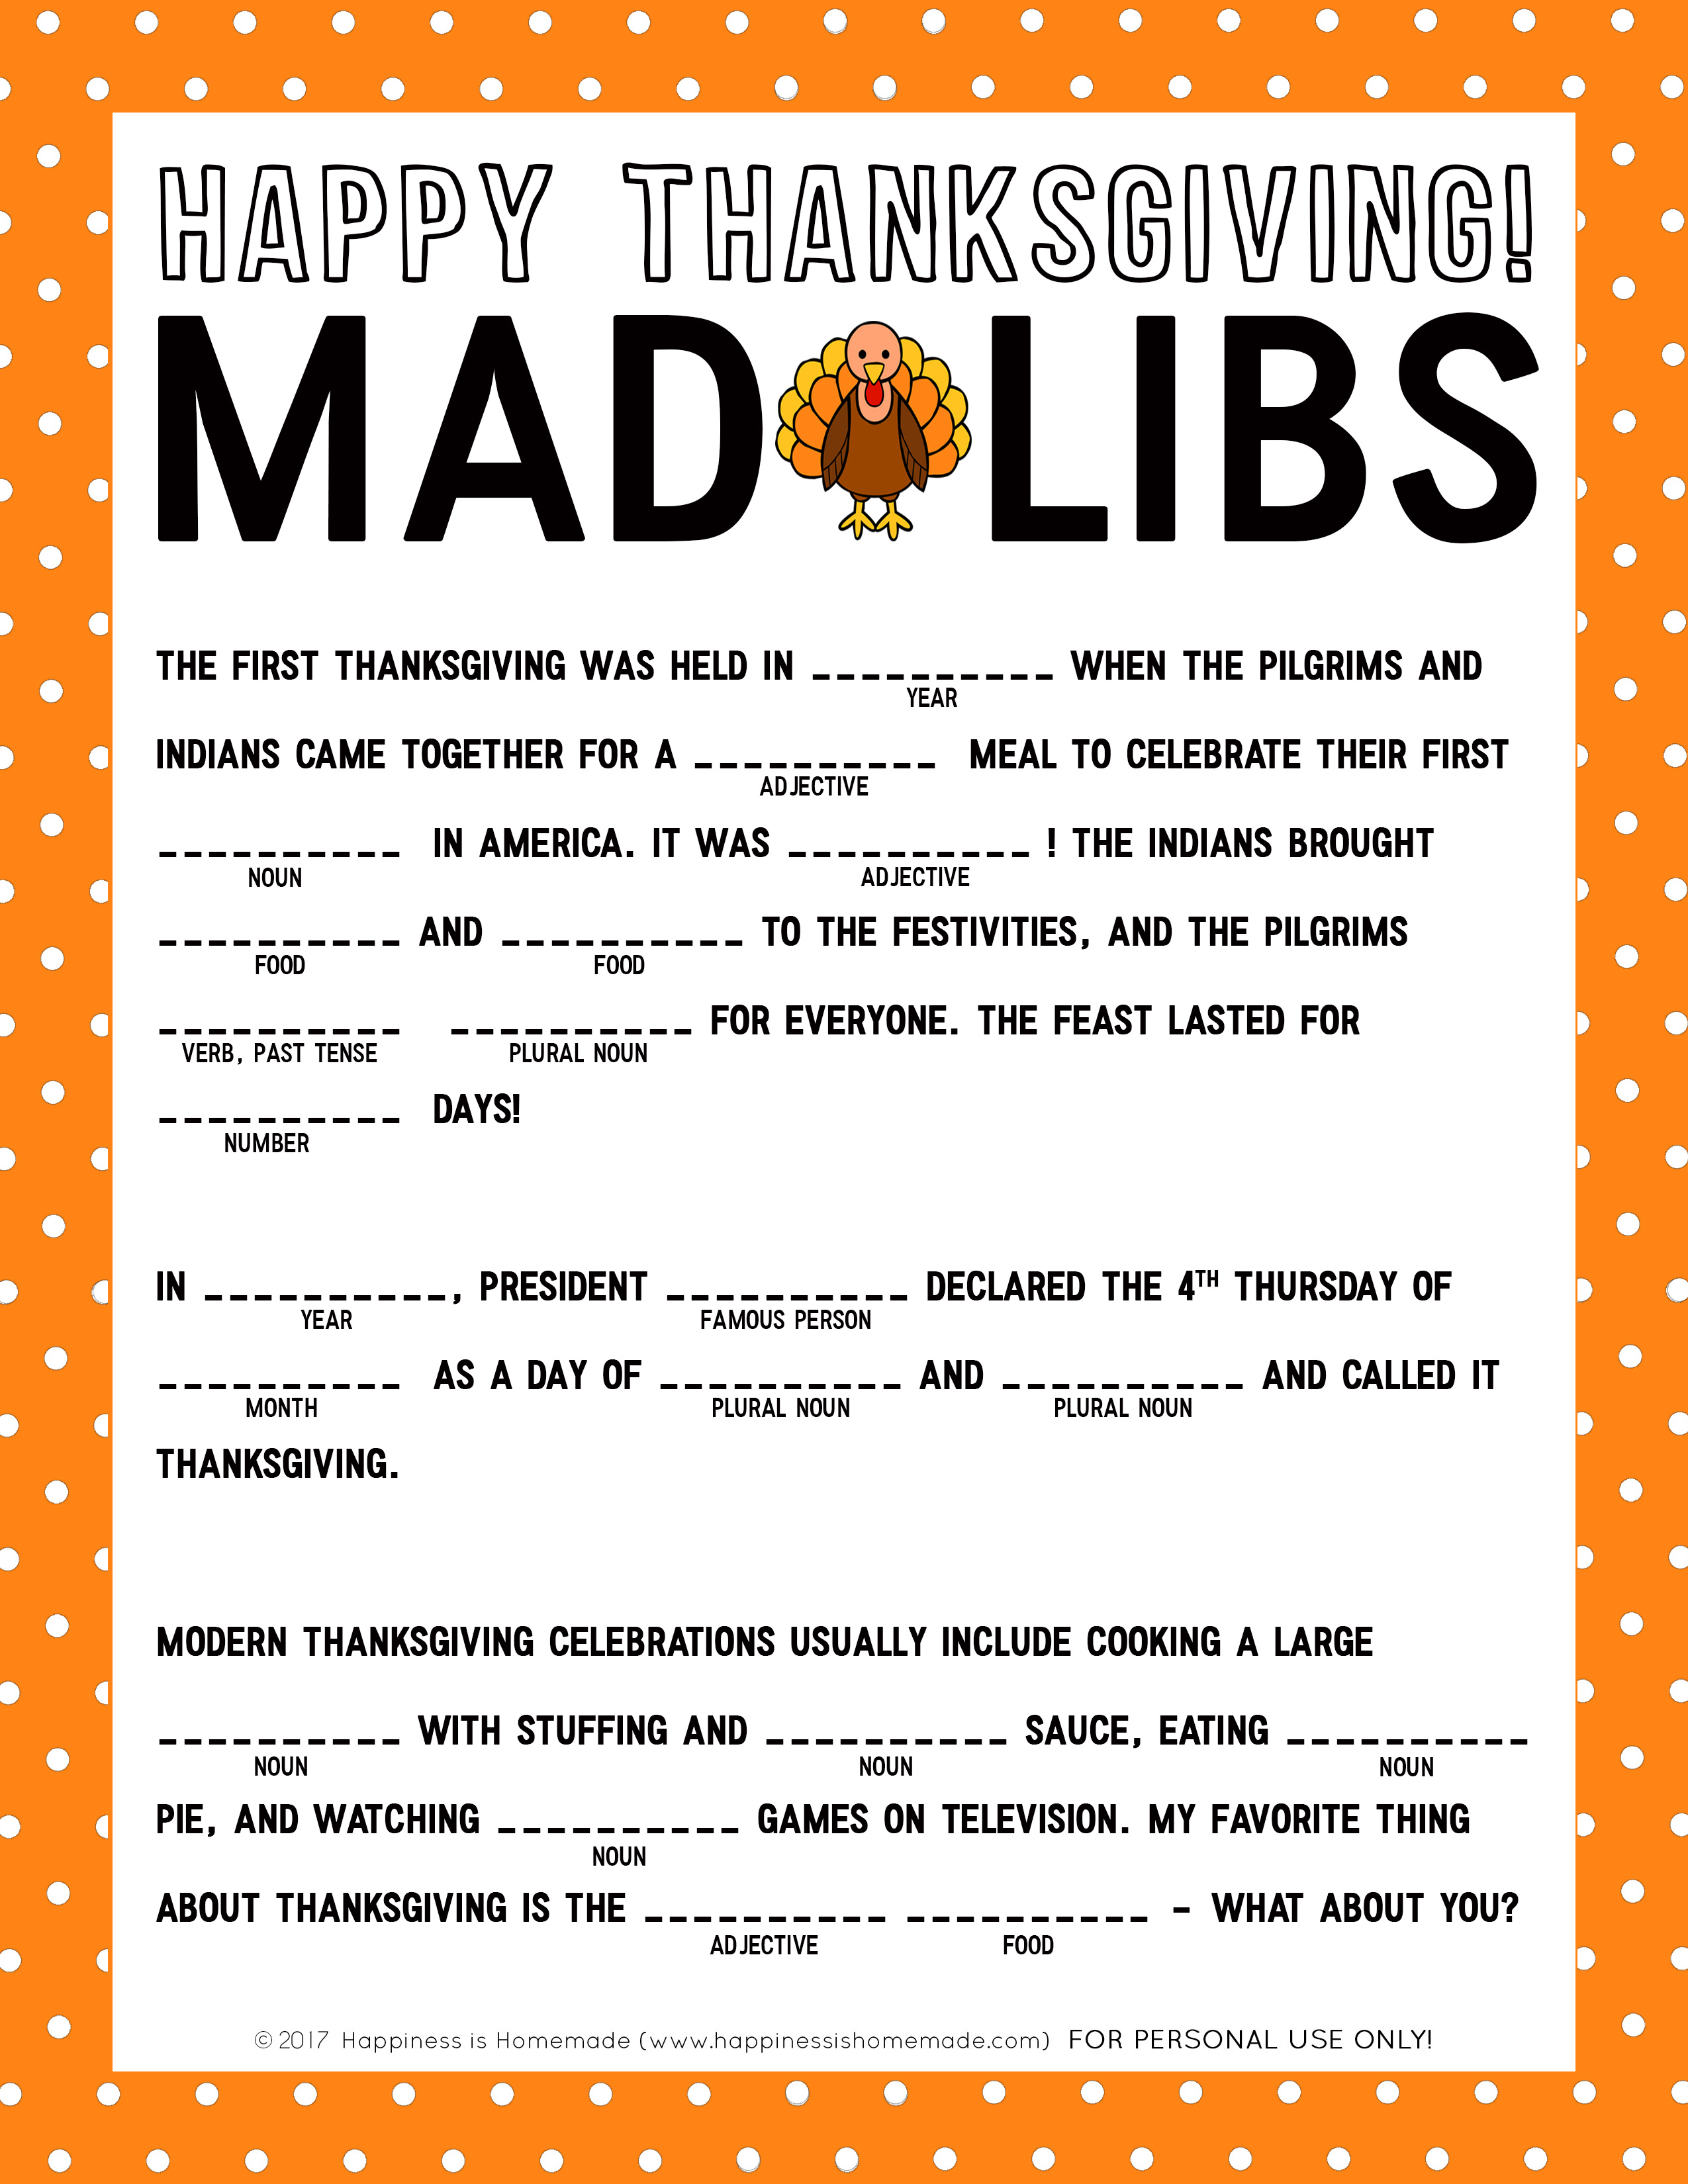 Thanksgiving Mad Libs Printable Game - Happiness Is Homemade - Free Printable Mad Libs For Tweens